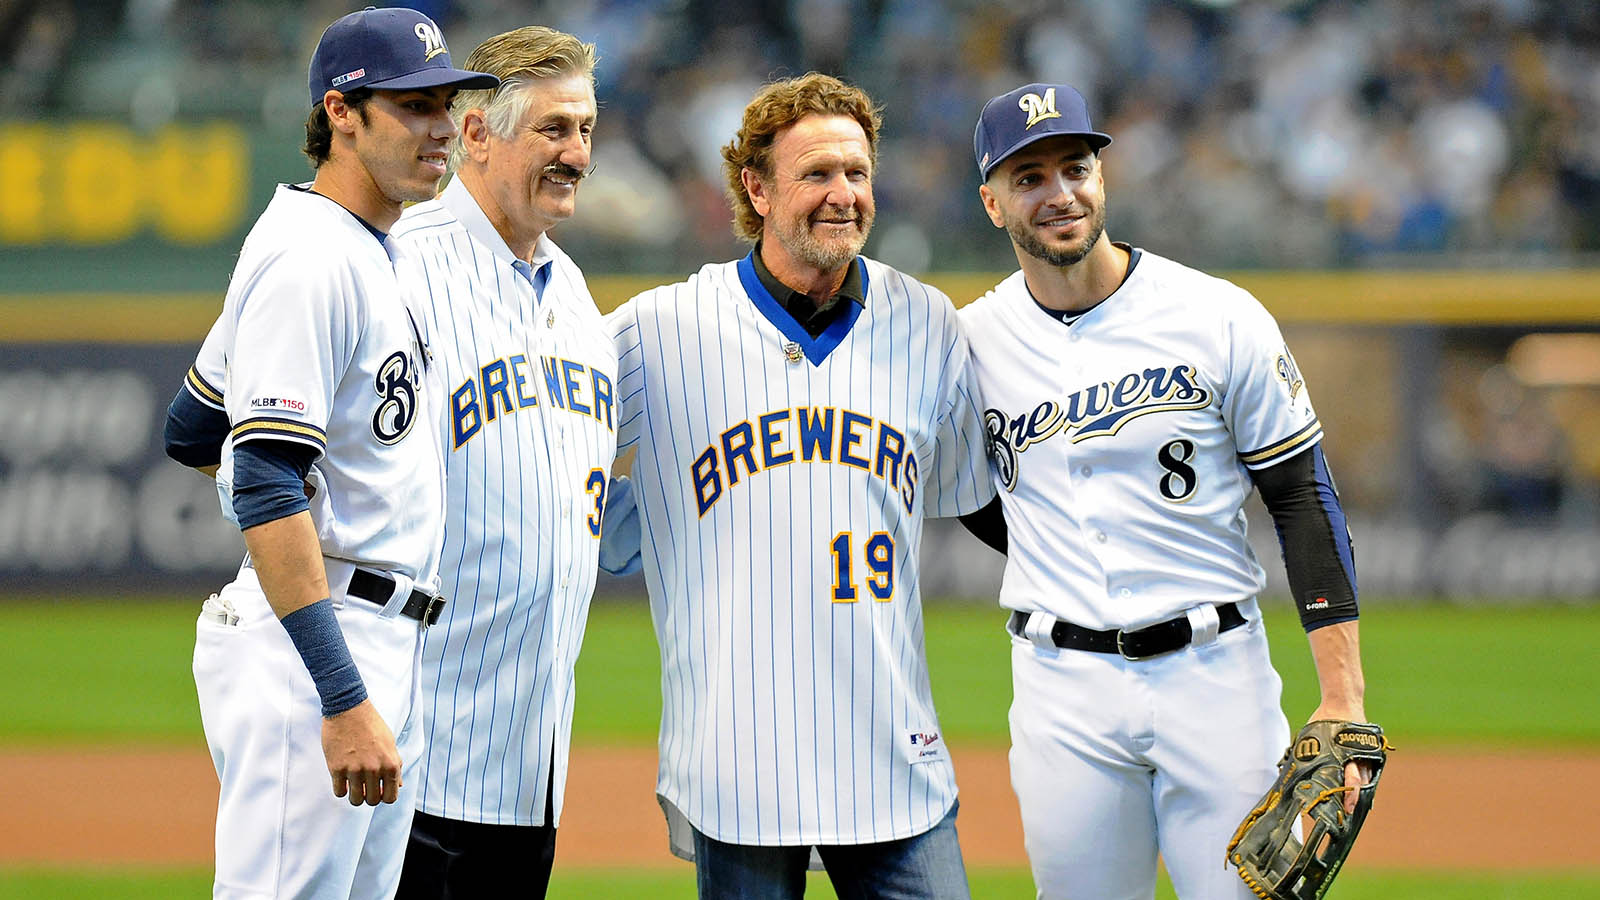 Milwaukee Brewers outfielder Christian Yelich and outfielder Ryan Braun pose for a photo with former Brewers Rollie Fingers and Robin Yount after they threw out ceremonial first pitches before their game against the St. Louis Cardinals at Miller Park. Mandatory Credit: Michael McLoone-USA TODAY Sports